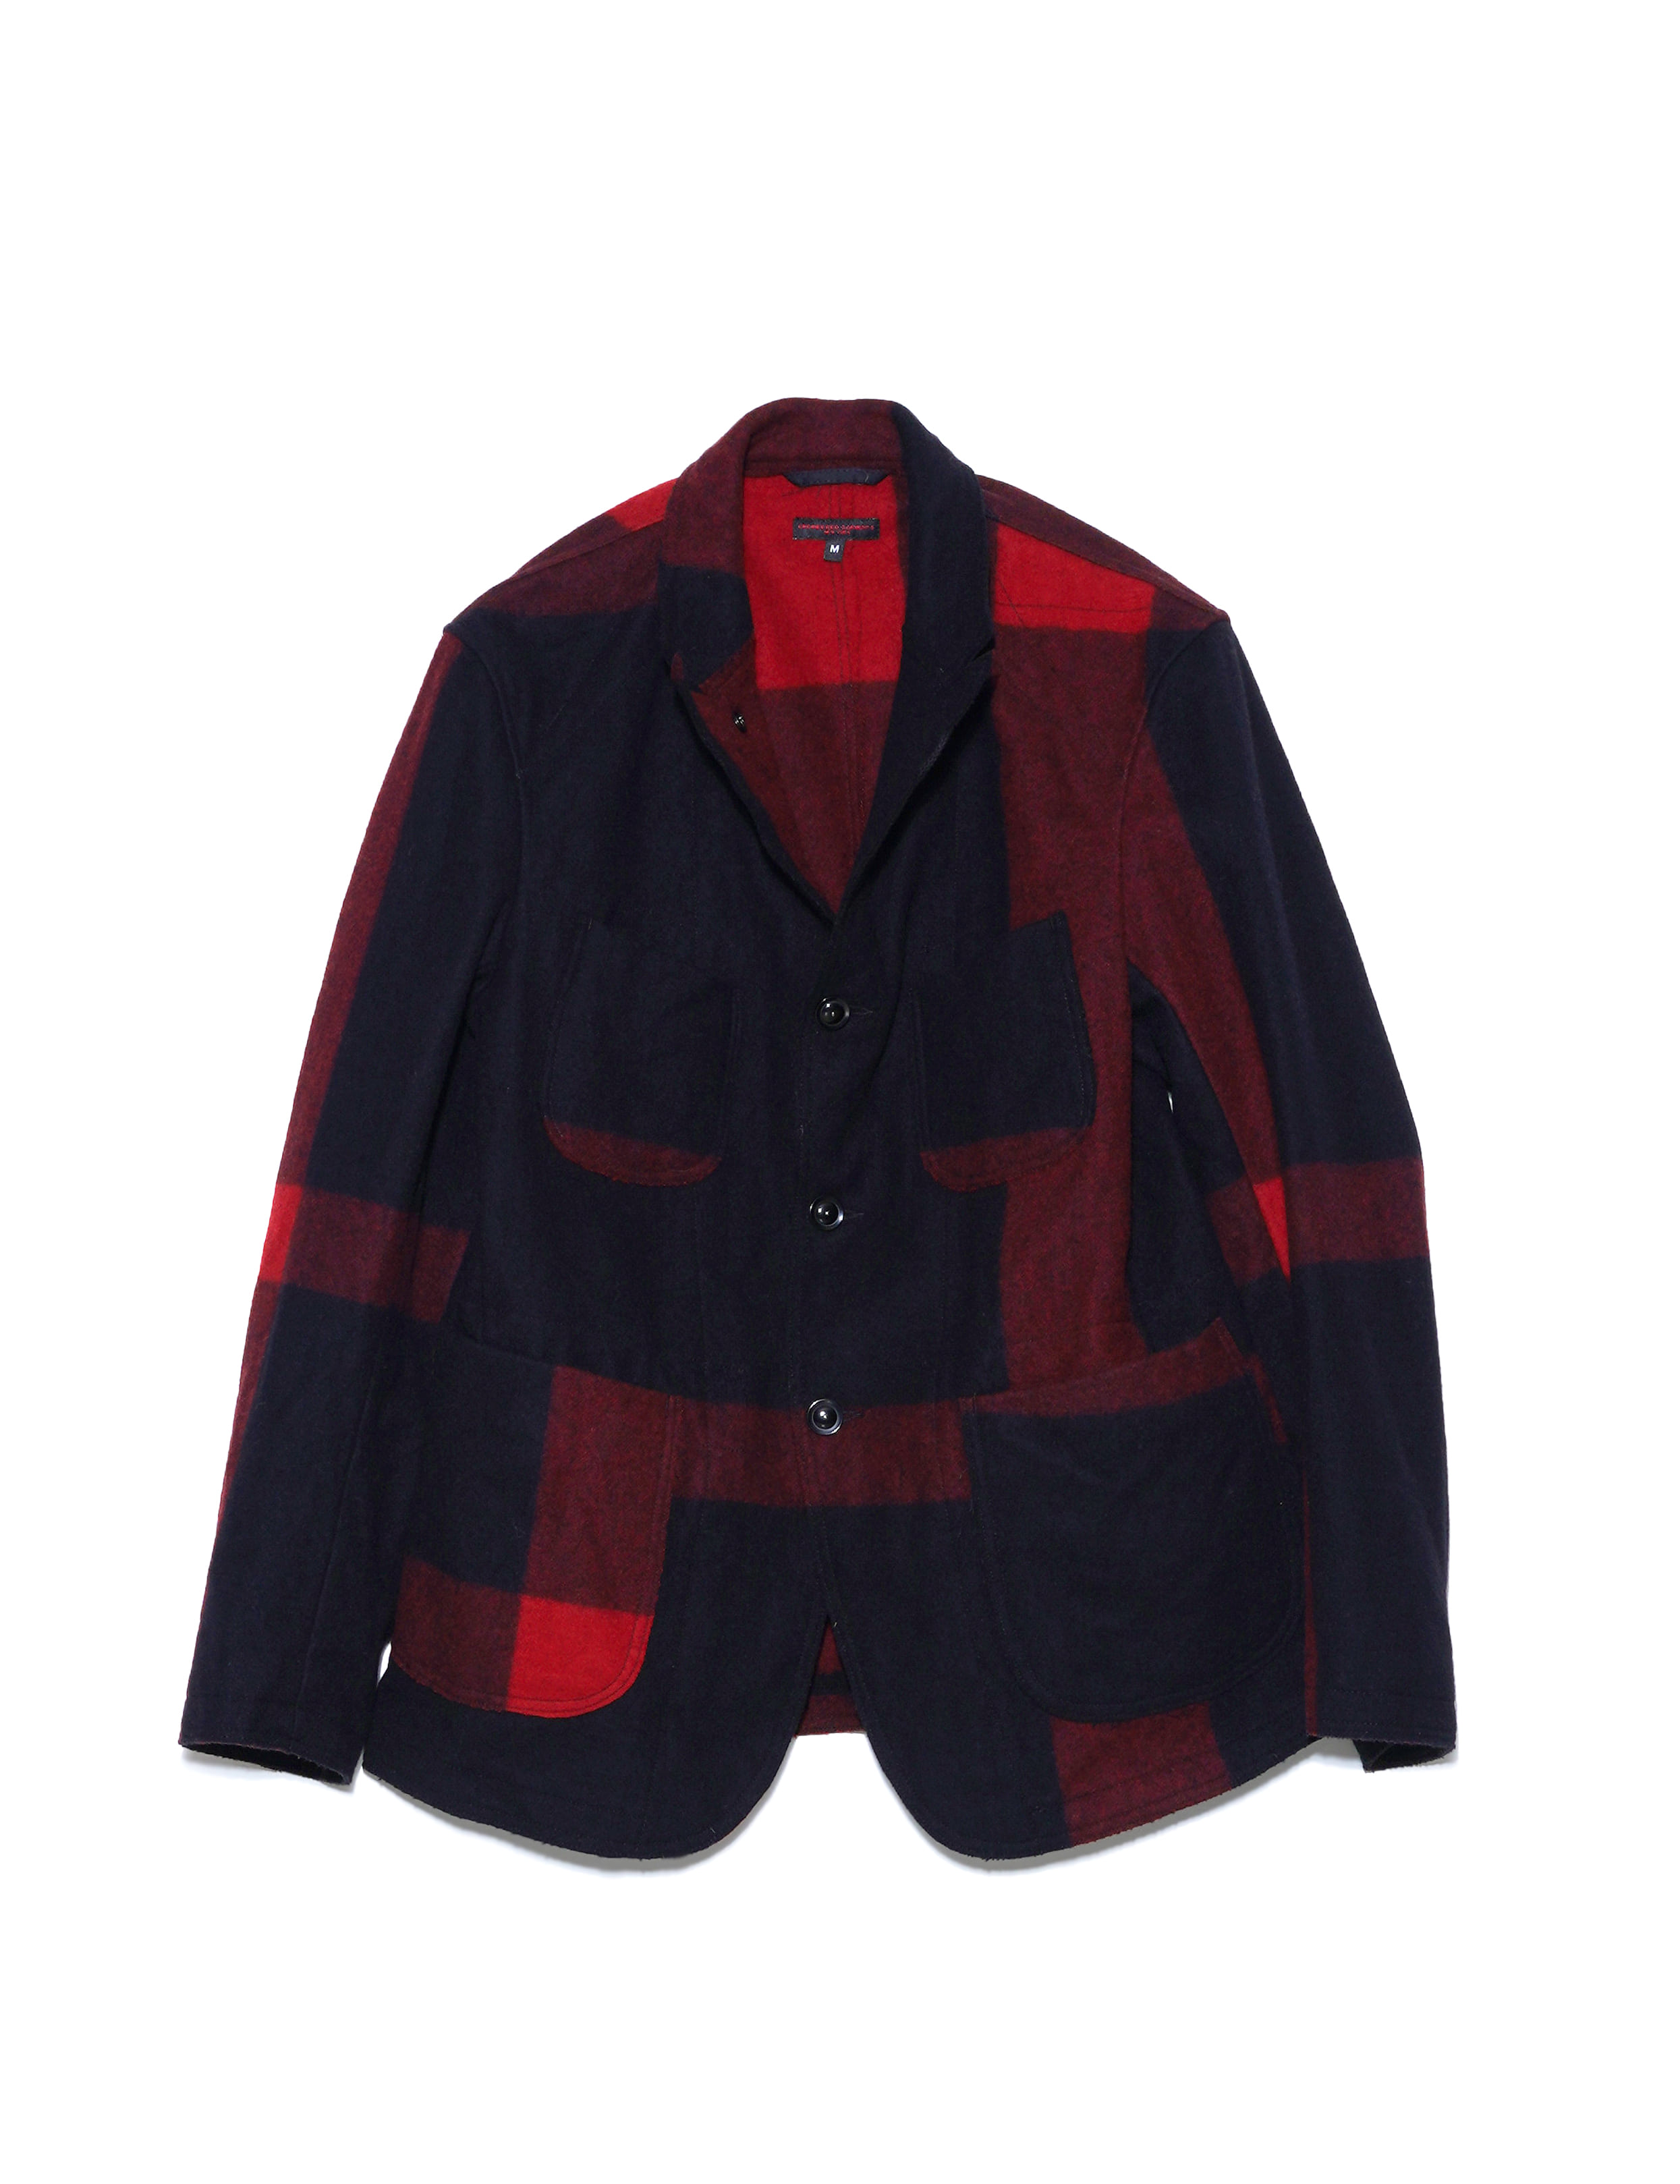 RE BEDFORD JACKET (BLACK)